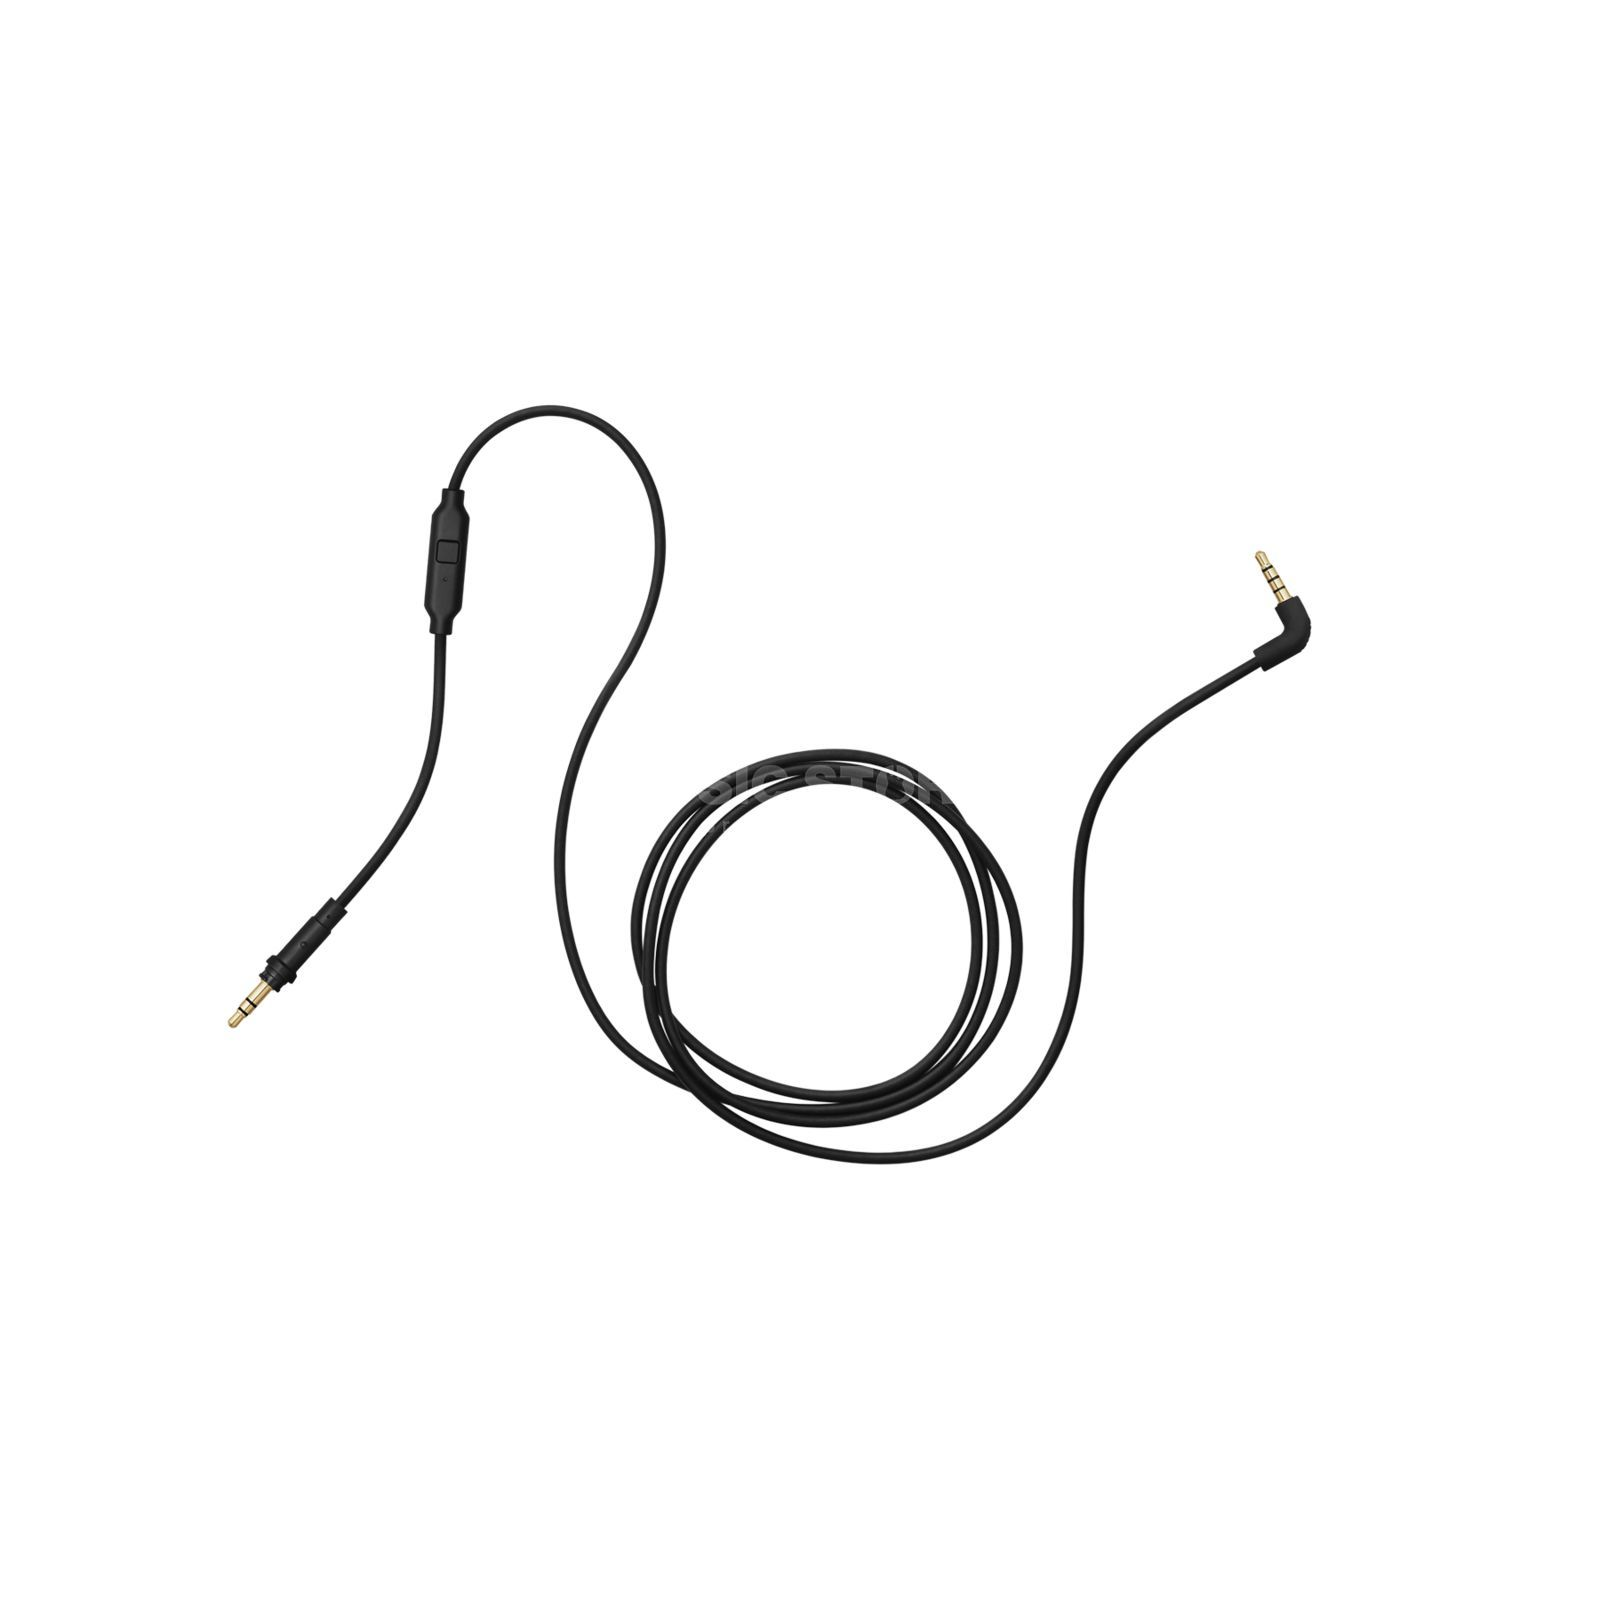 Aiaiai C01 - straight w/Mic Cable for TMA-2 Produktbild